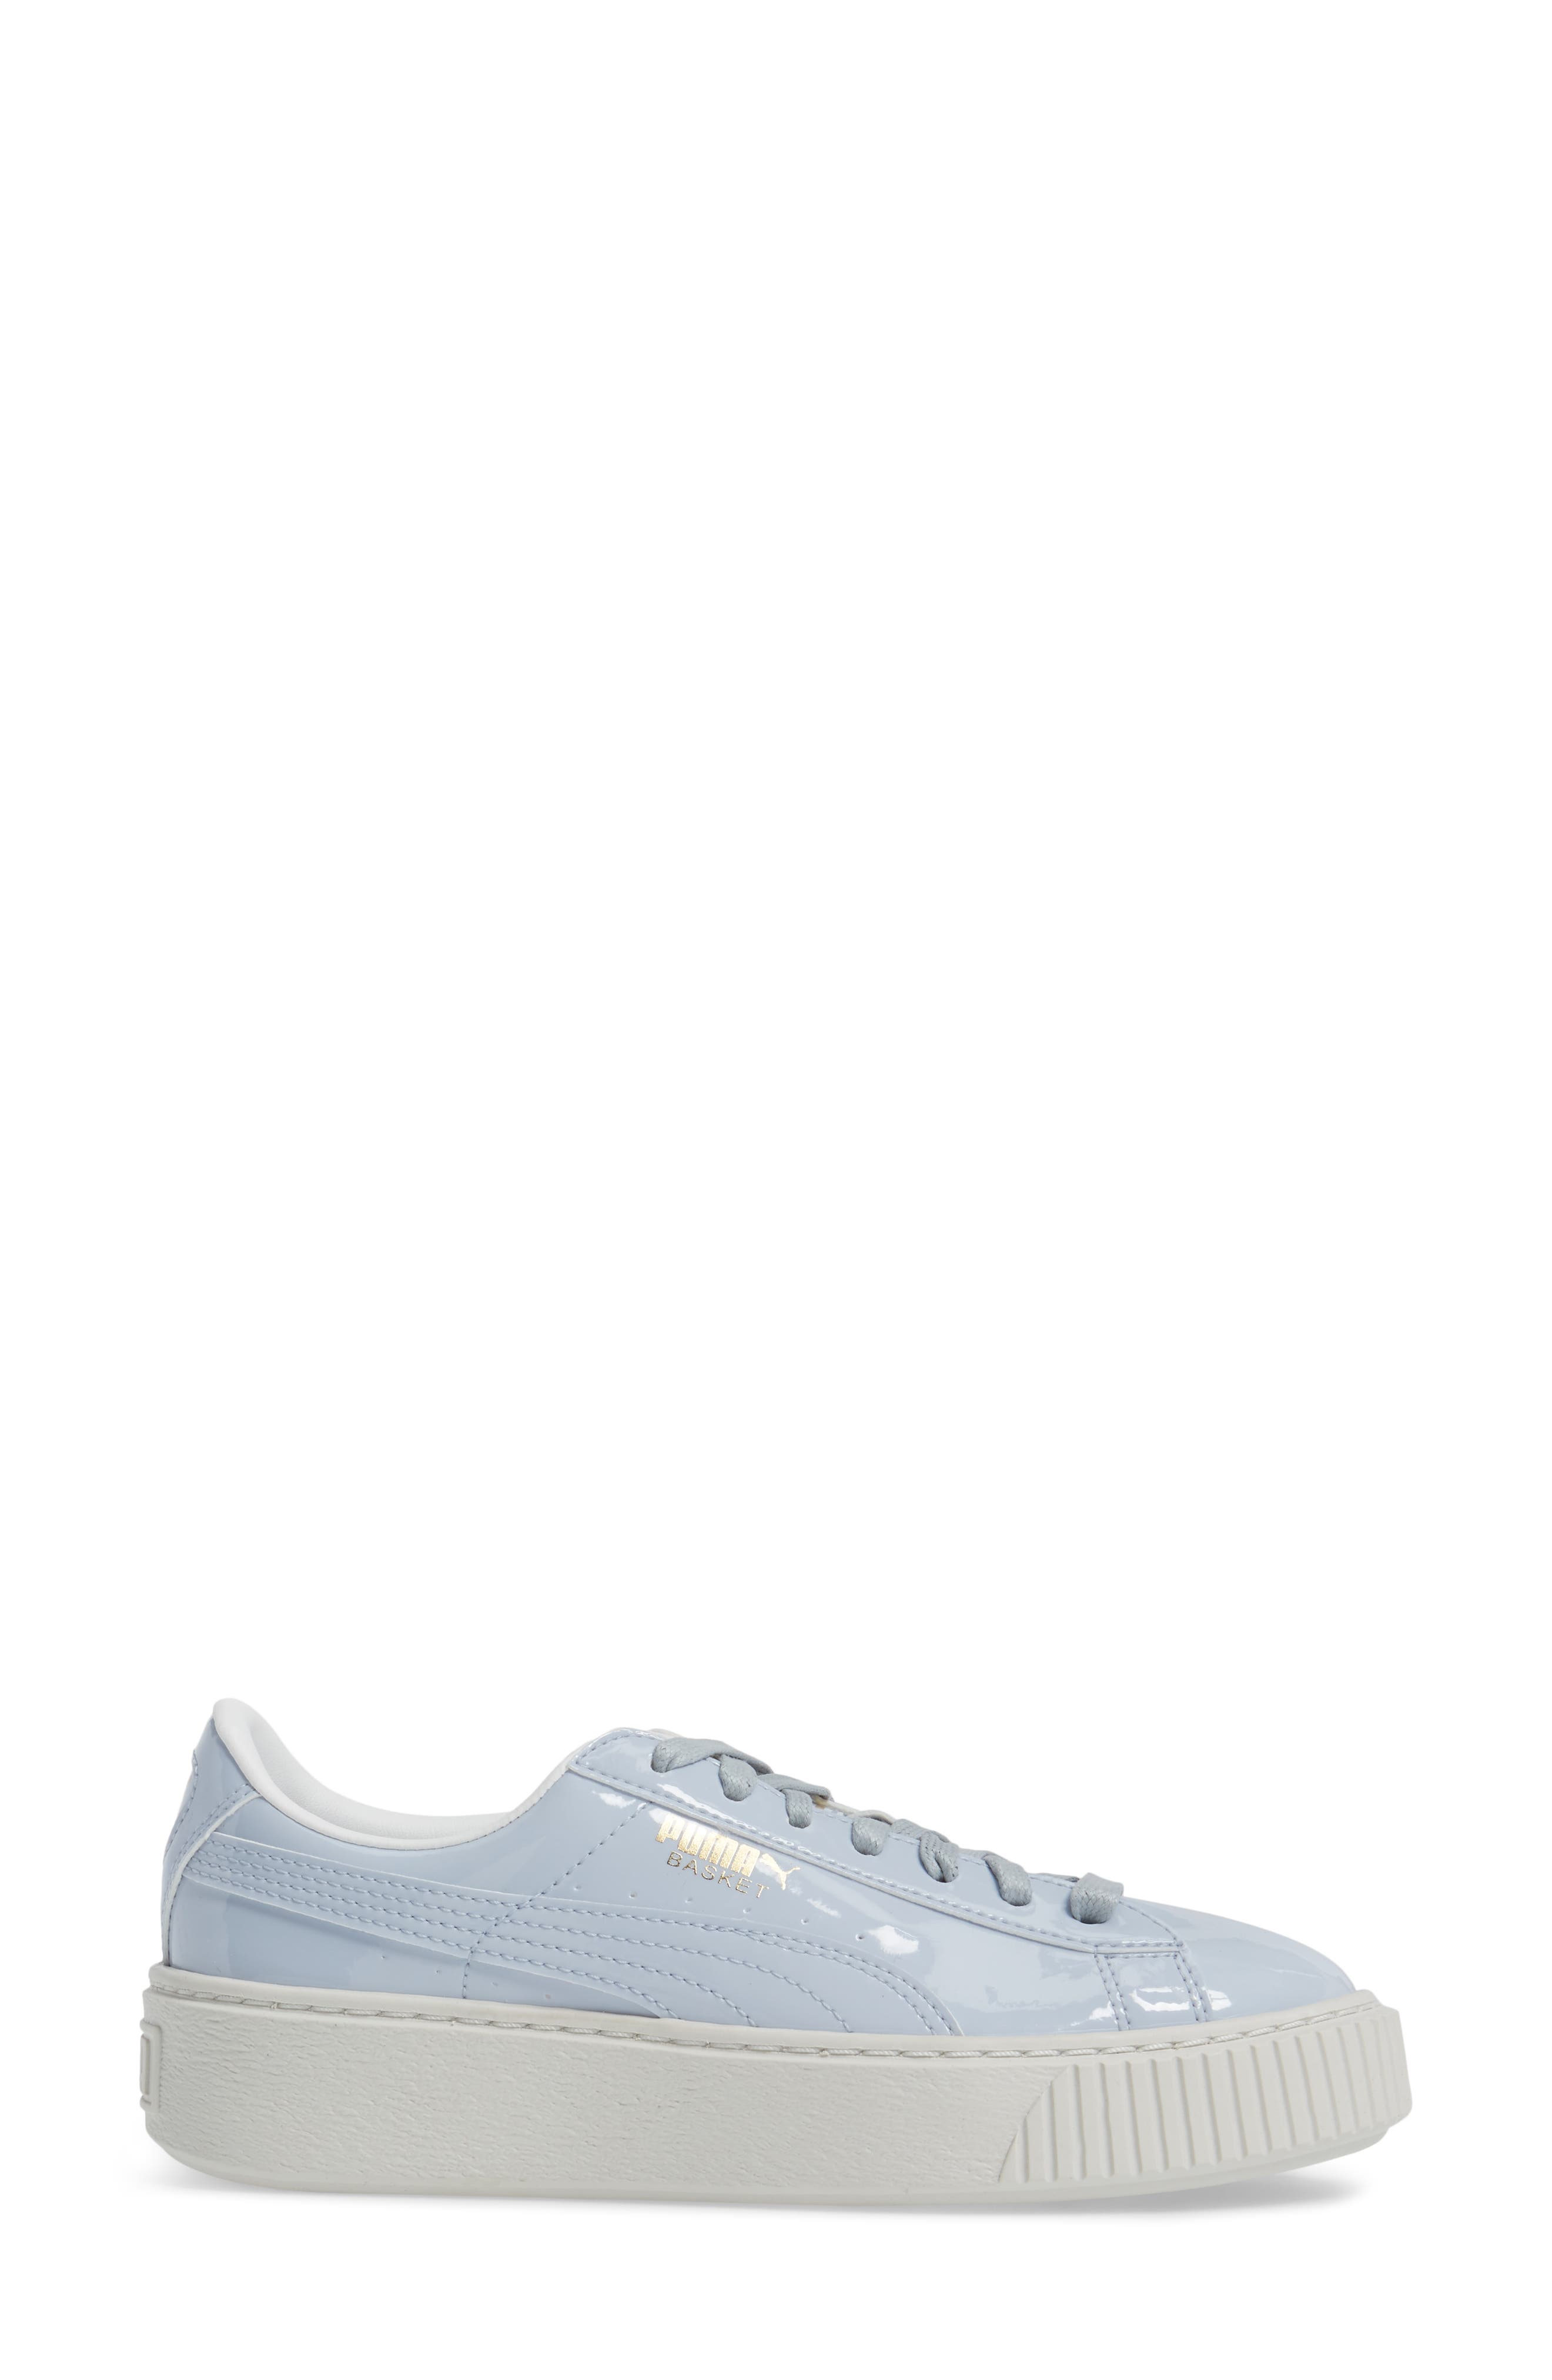 Alternate Image 3  - PUMA Basket Platform Sneaker (Women)